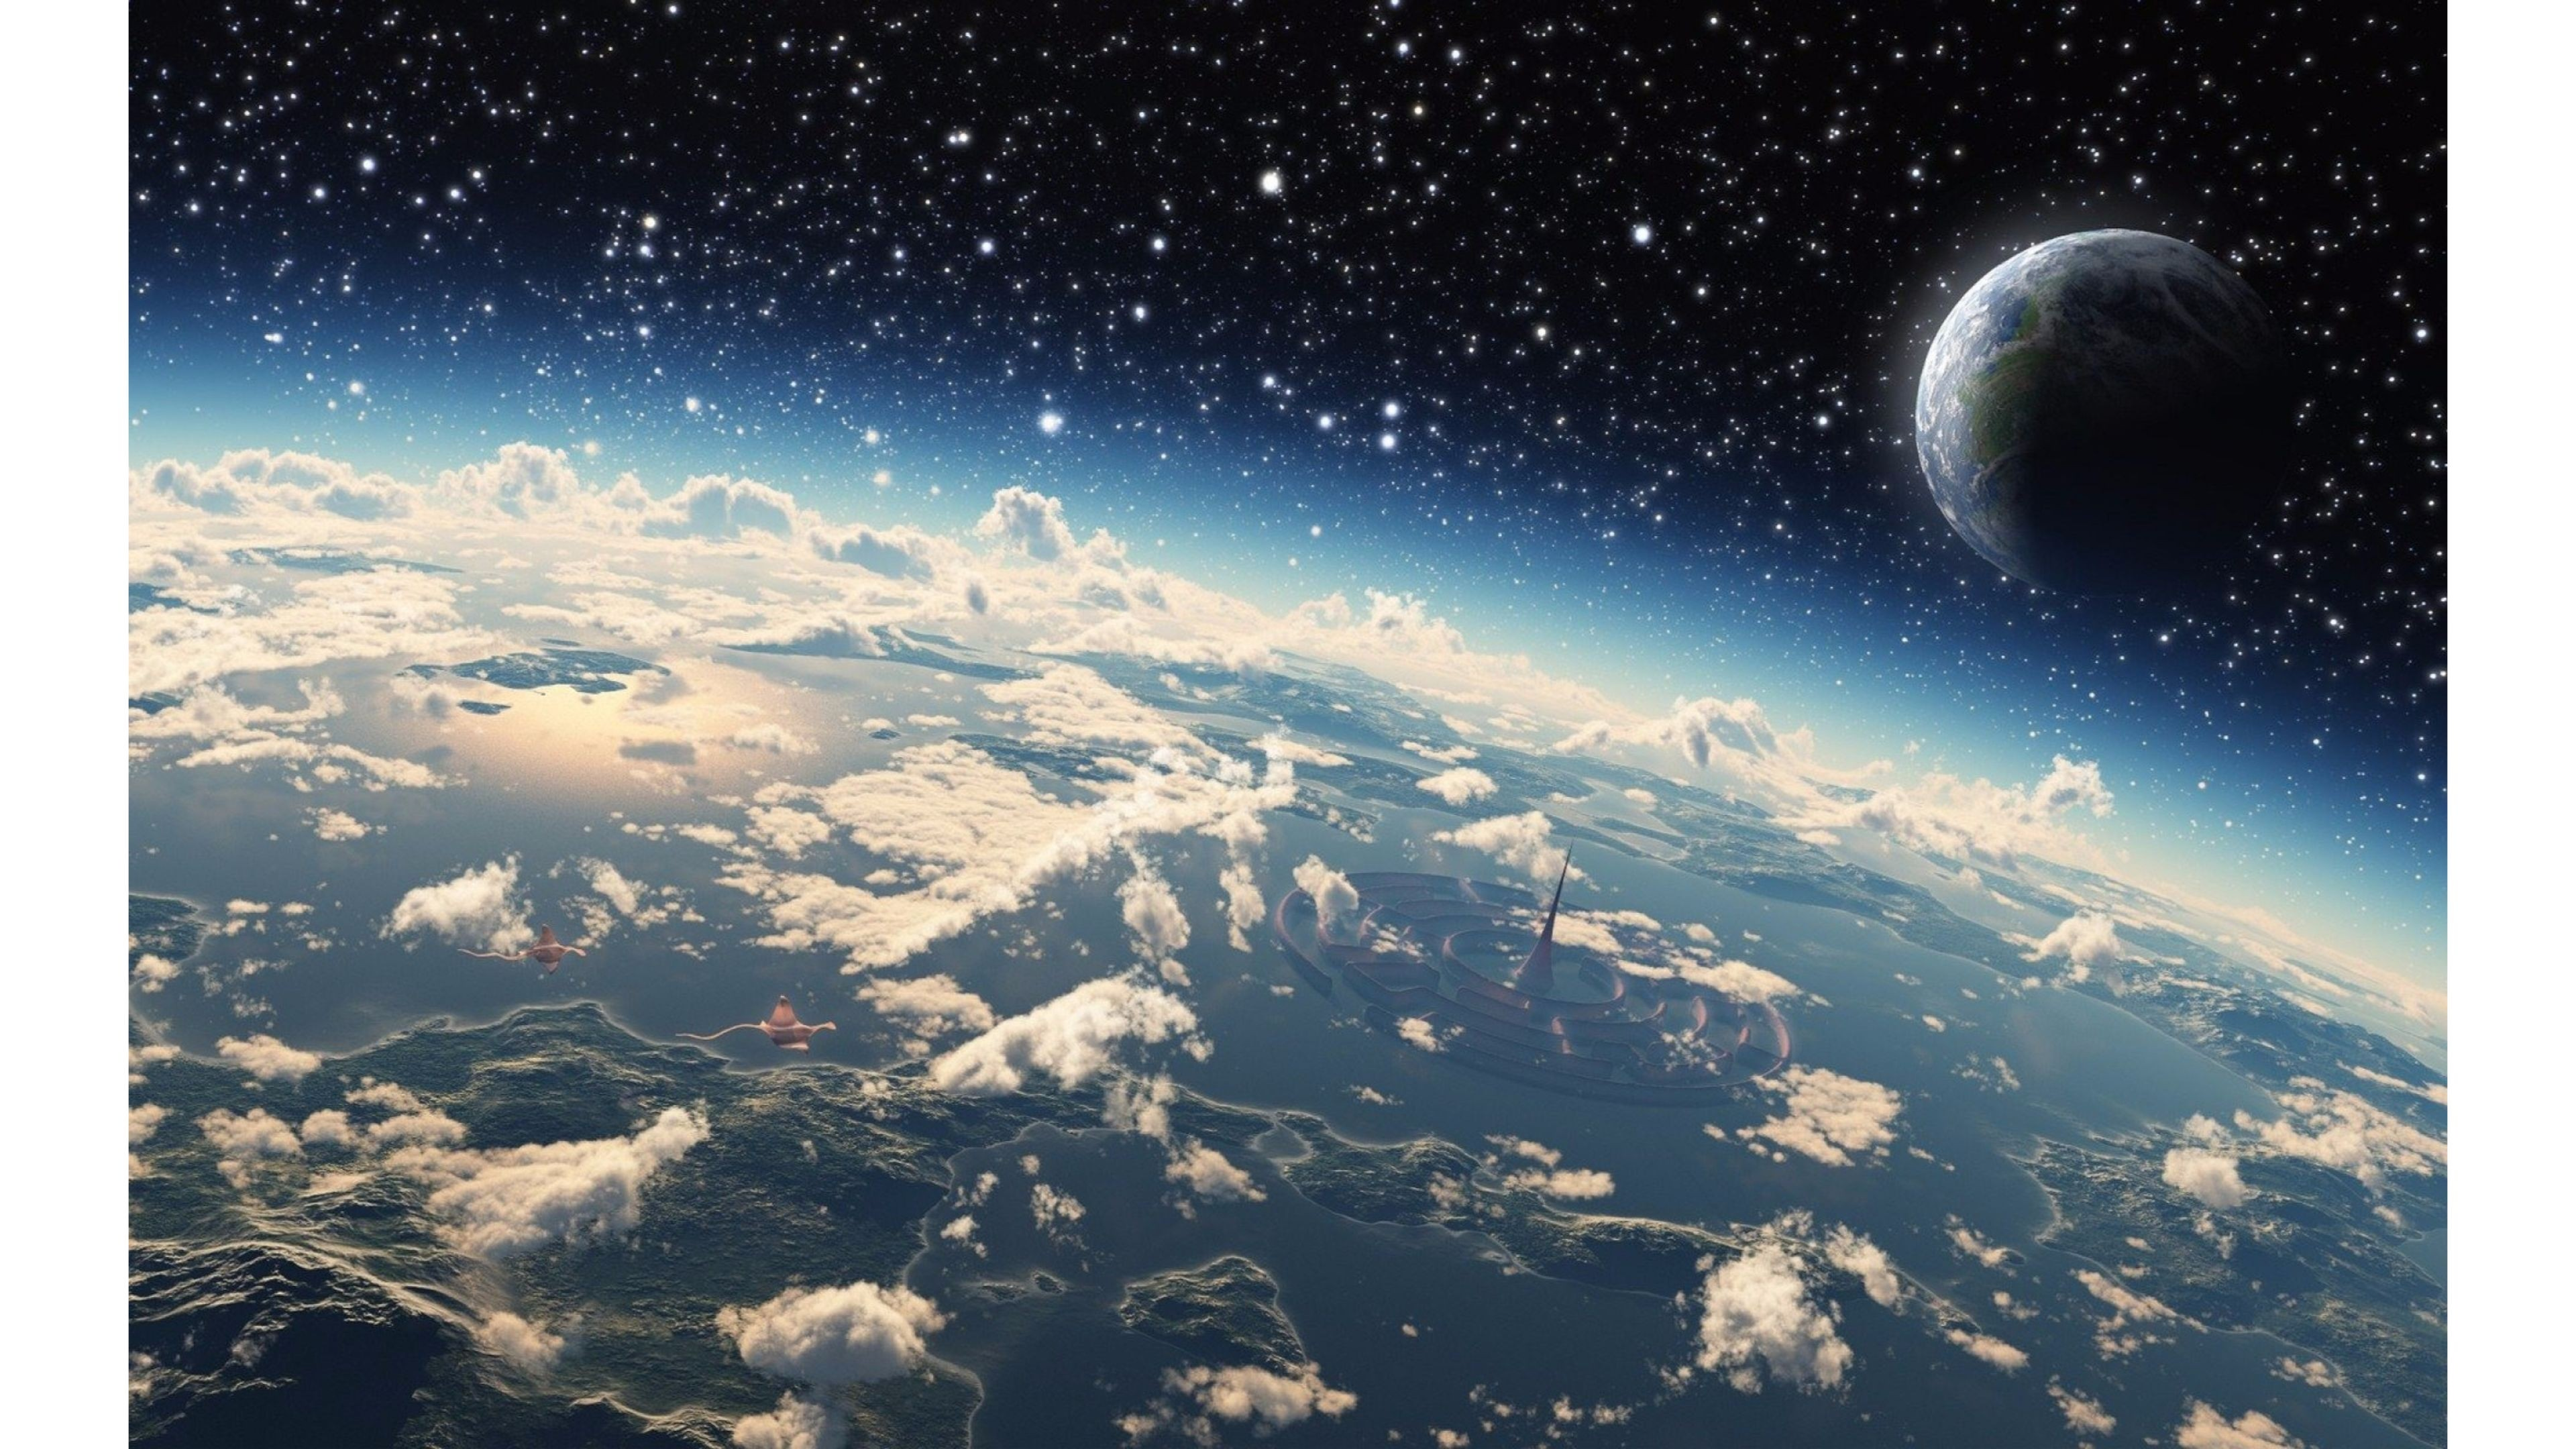 Space Wallpaper 4K ·① Download Free Awesome High